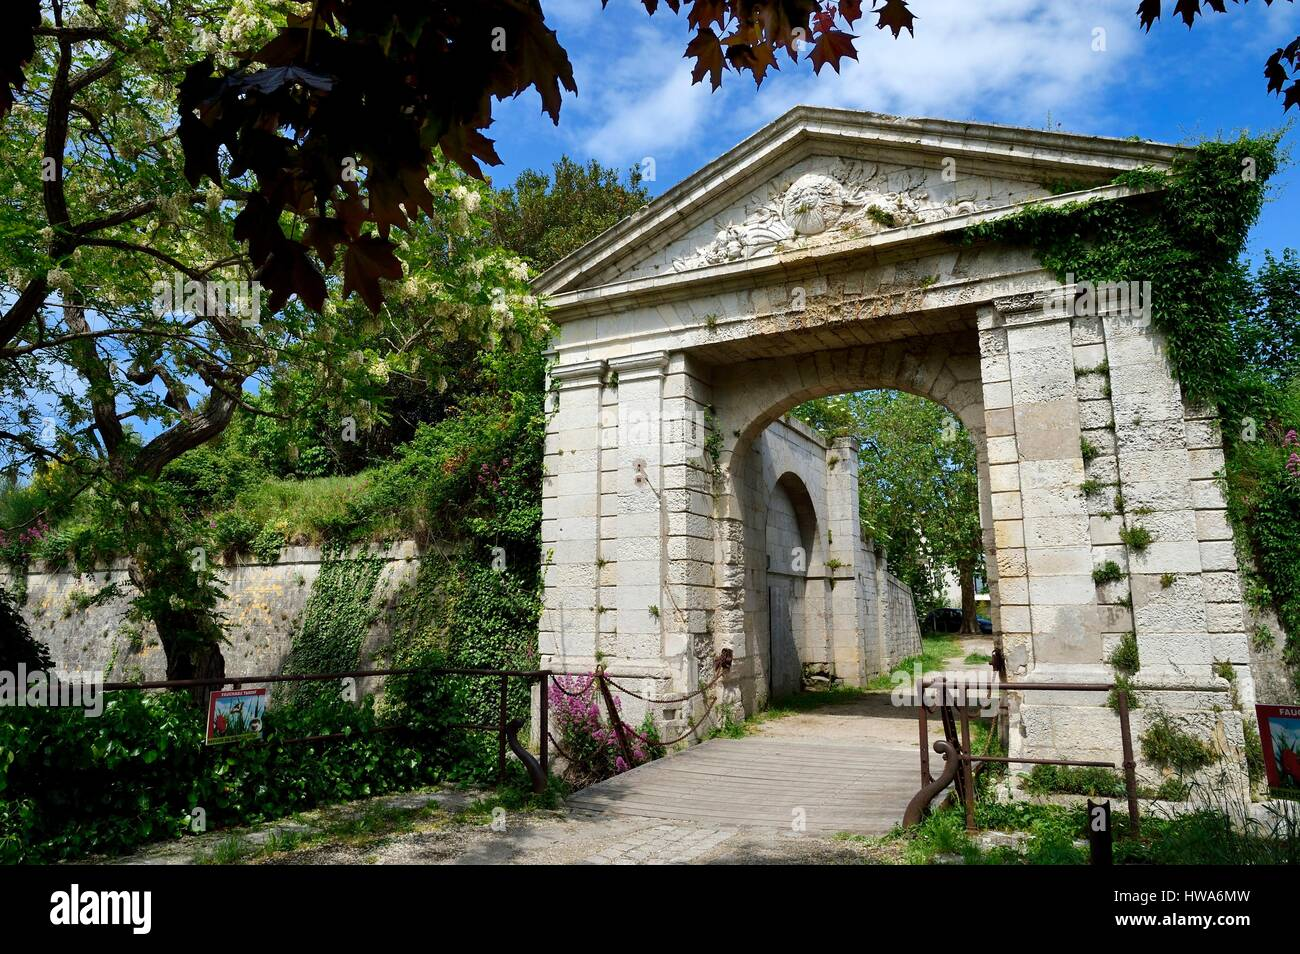 France, Charente-Maritime, La Rochelle, the gate before Porte Royale (Royal Gate) in the promenade Henriette Bouchet - Stock Image